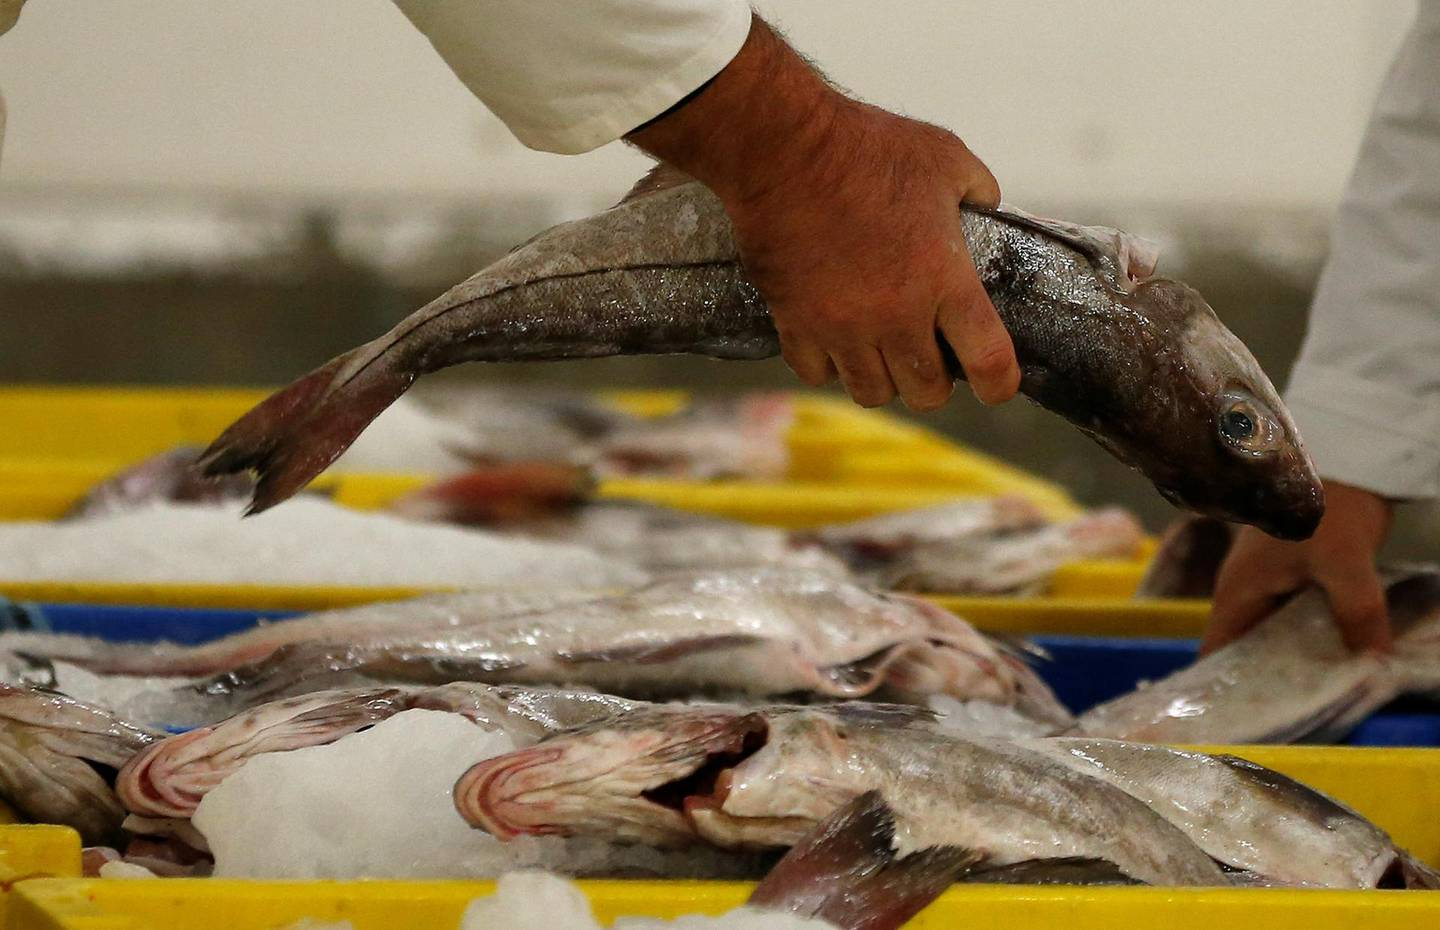 FILE PHOTO: A fish buyer examines a Haddock before the start of the daily auction at the fish market in Grimsby, Britain November 17, 2015.REUTERS/Phil Noble/File Photo